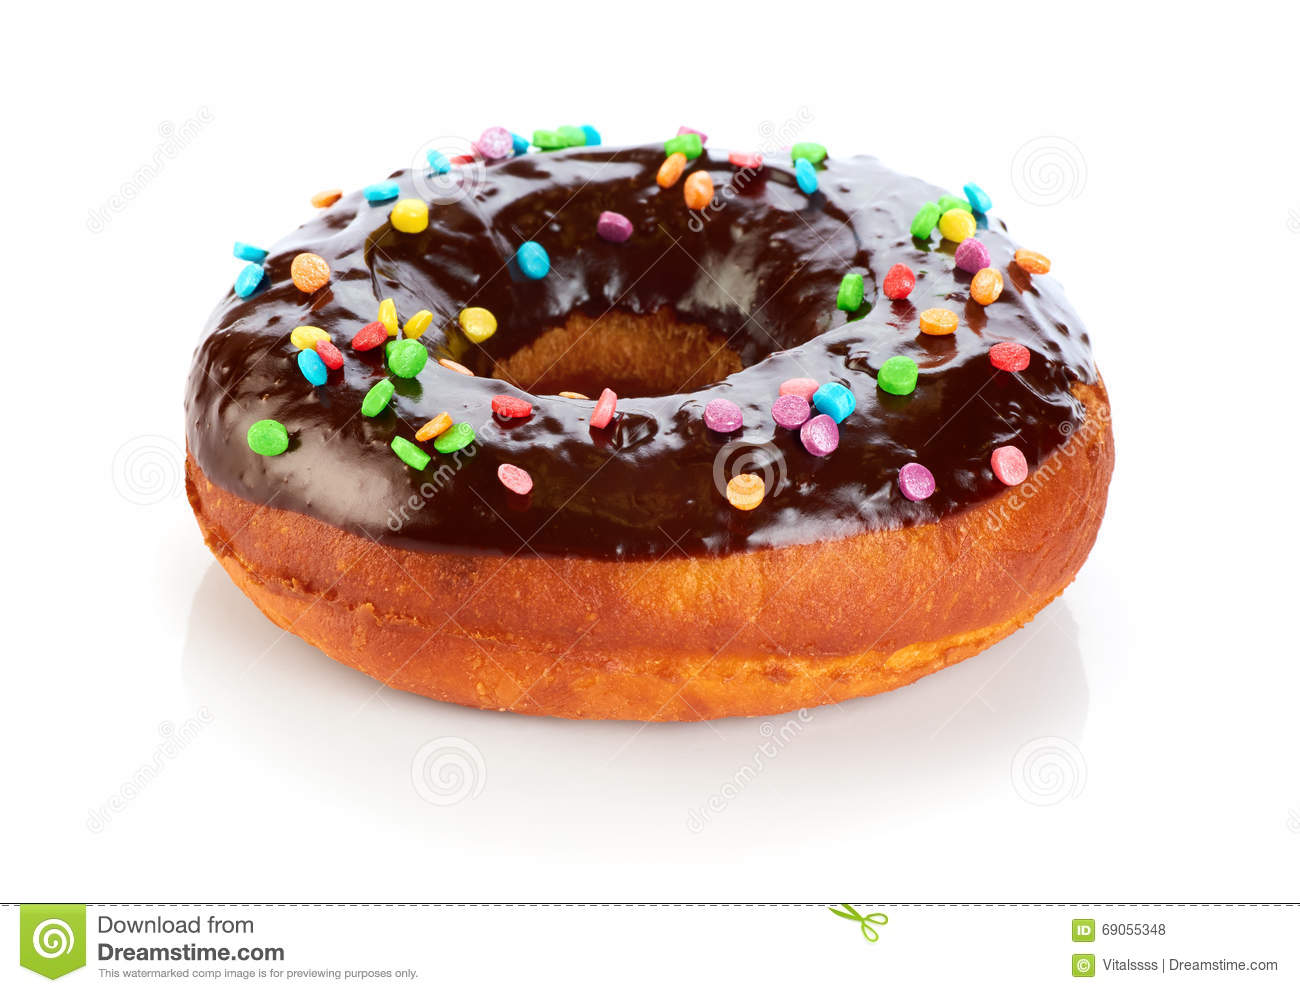 Calories In A Chocolate Covered Cake Donut